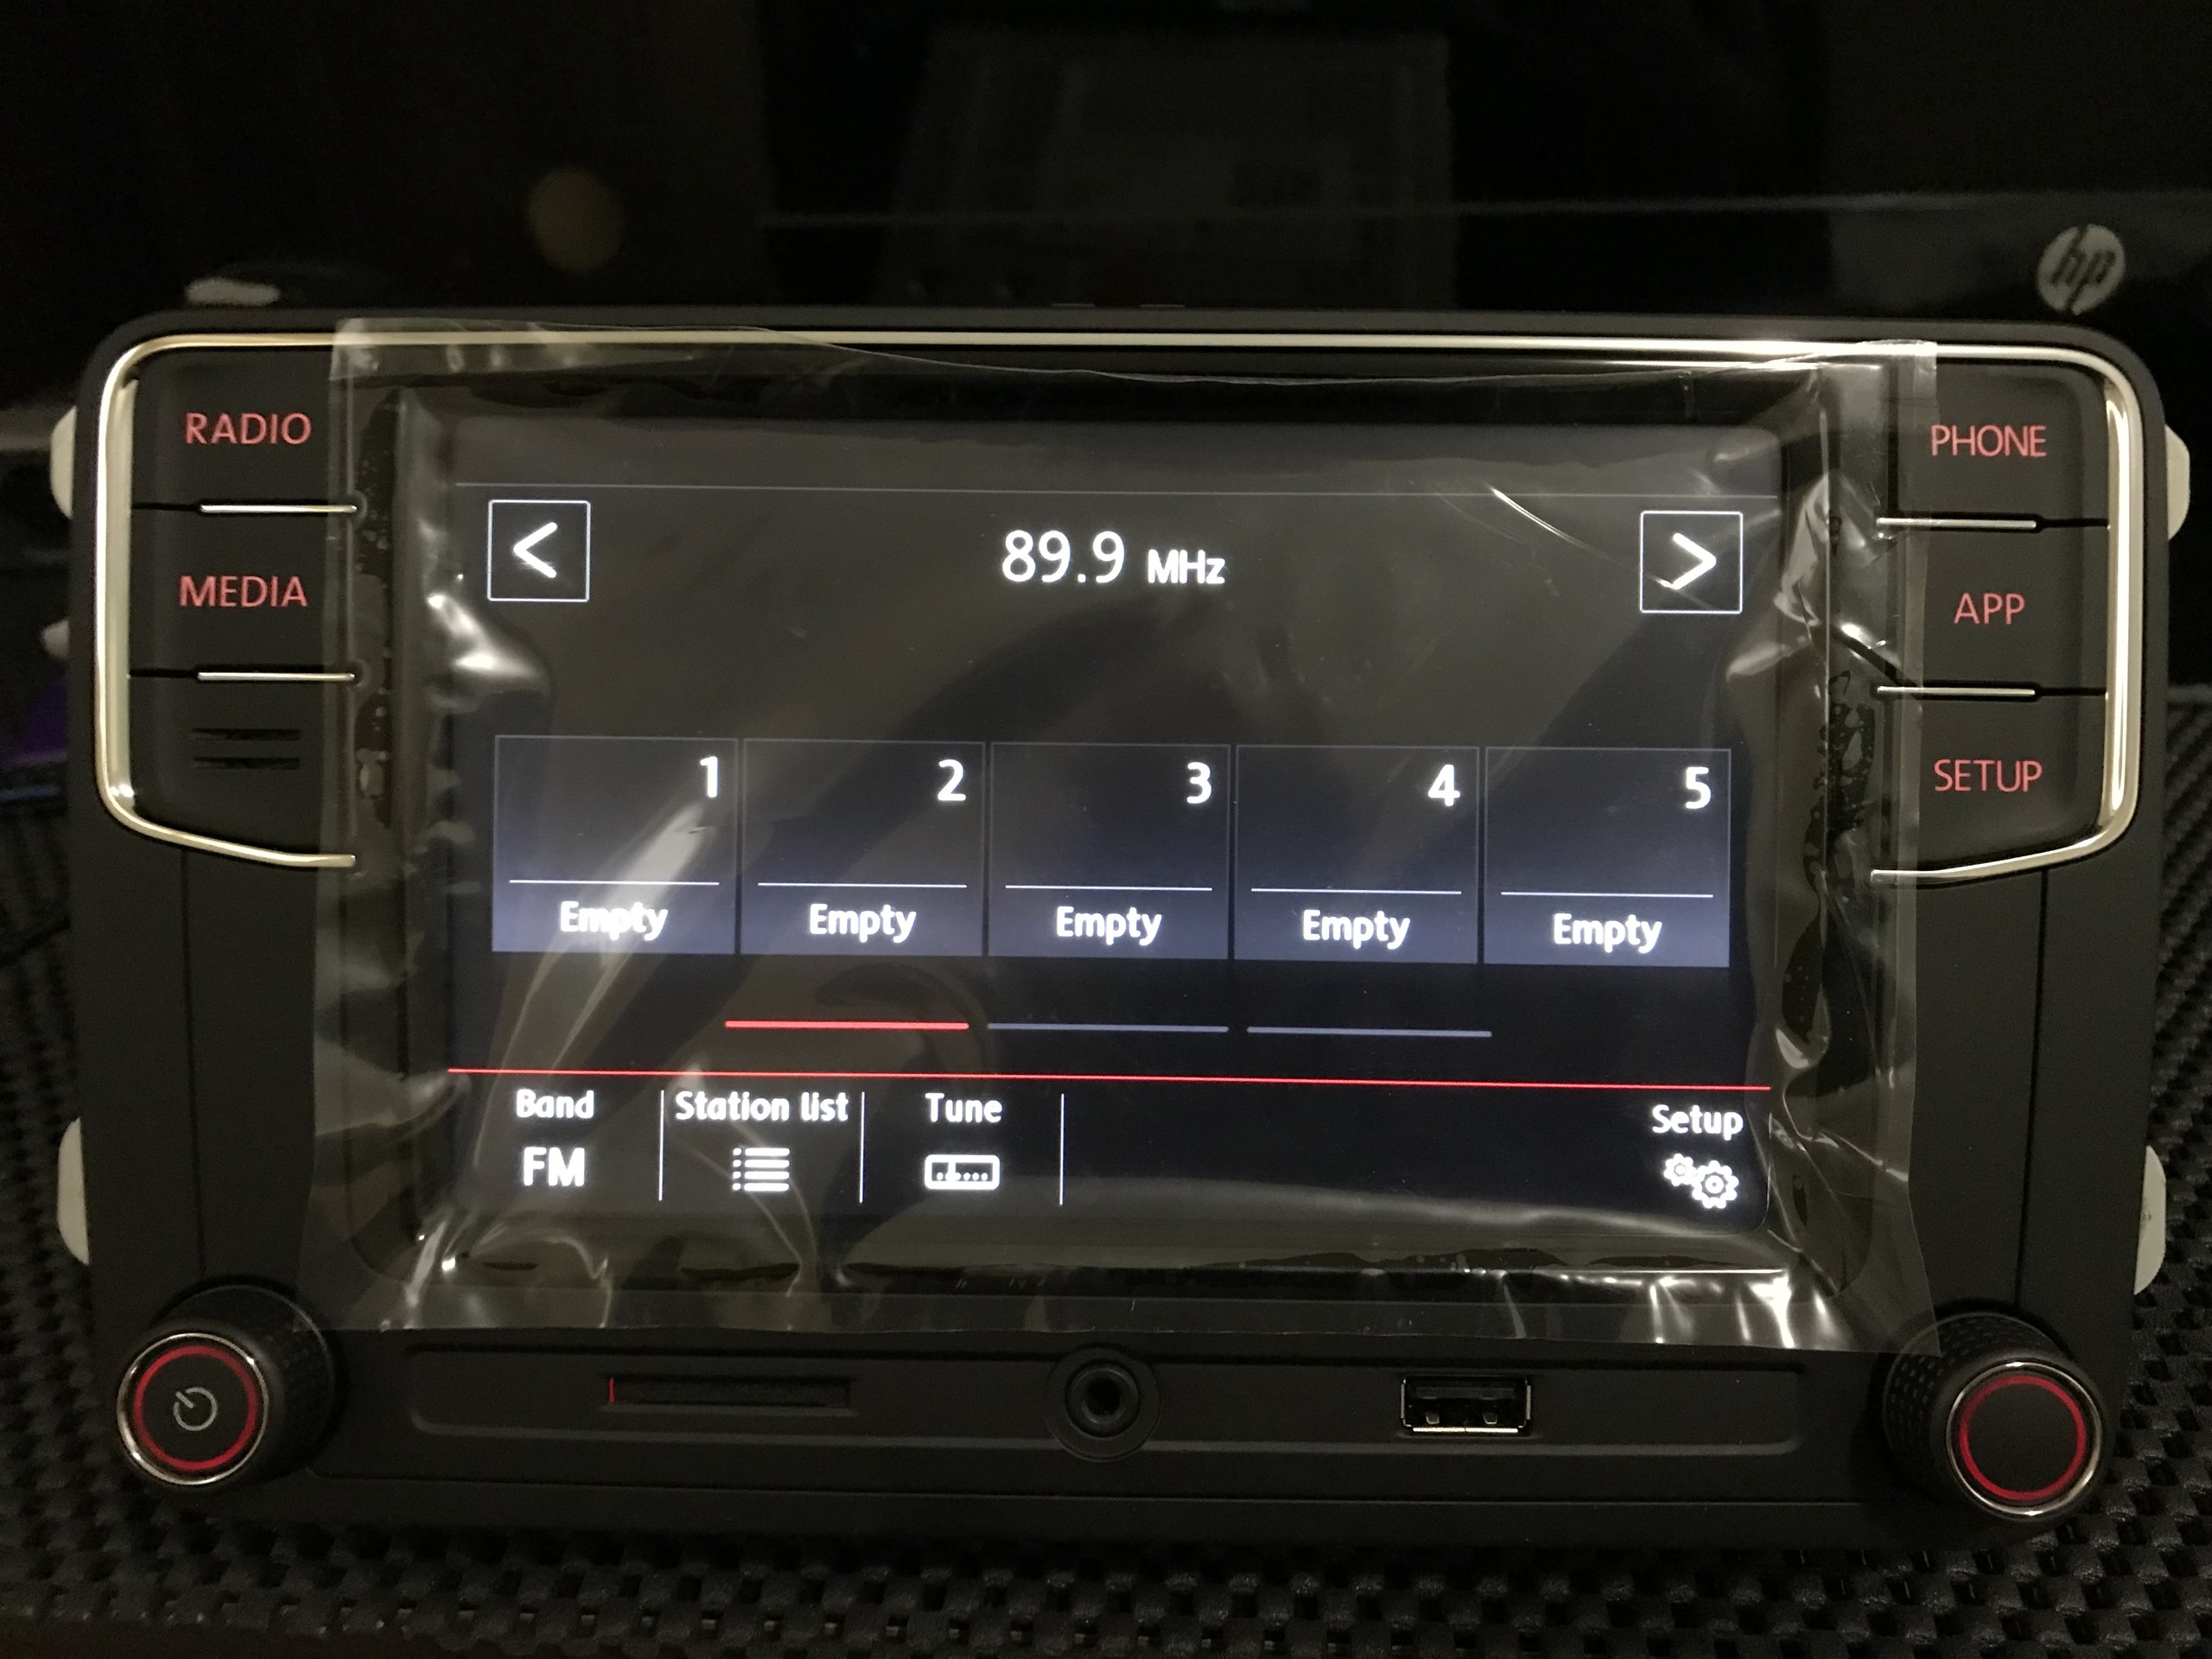 New RCD330 Plus Headunit with Mirrorlink/Carplay [Archive